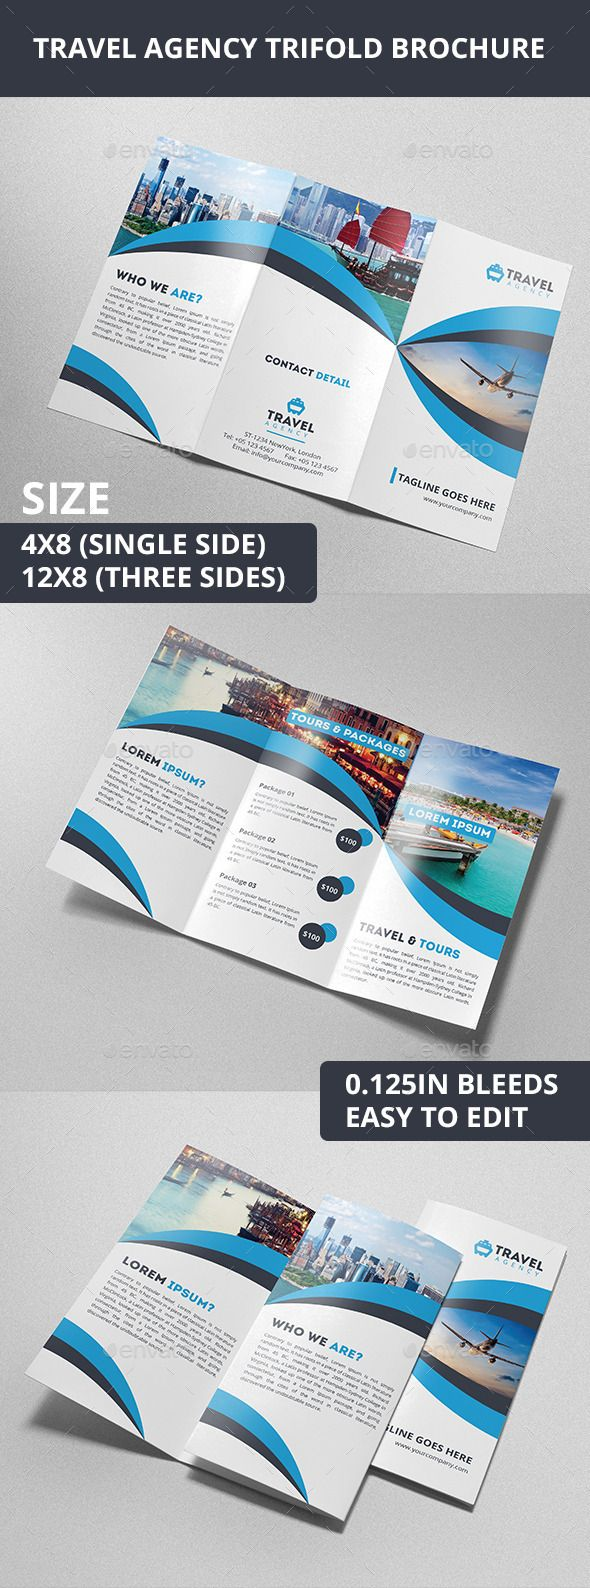 Travel Agency Trifold Brochure AI Template • Download ➝ https://graphicriver.net/item/travel-agency-trifold-brochure/10338029?ref=pxcr